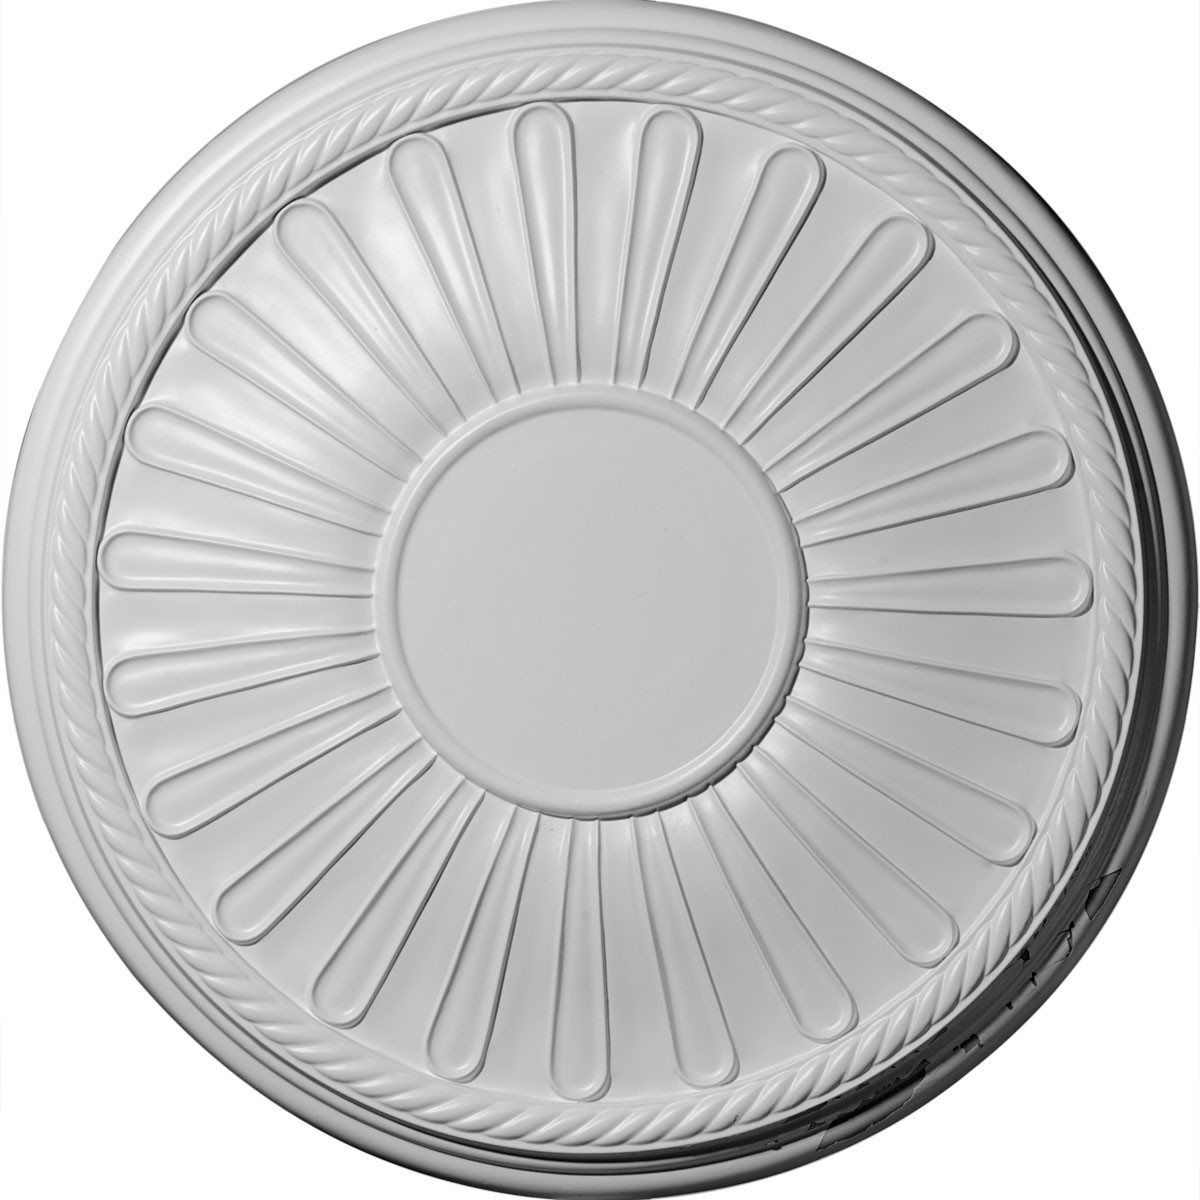 """EM-CM22LN - 19 7/8""""OD x 1 1/4""""P Leandros Ceiling Medallion (Fits Canopies up to 6 3/8"""")"""